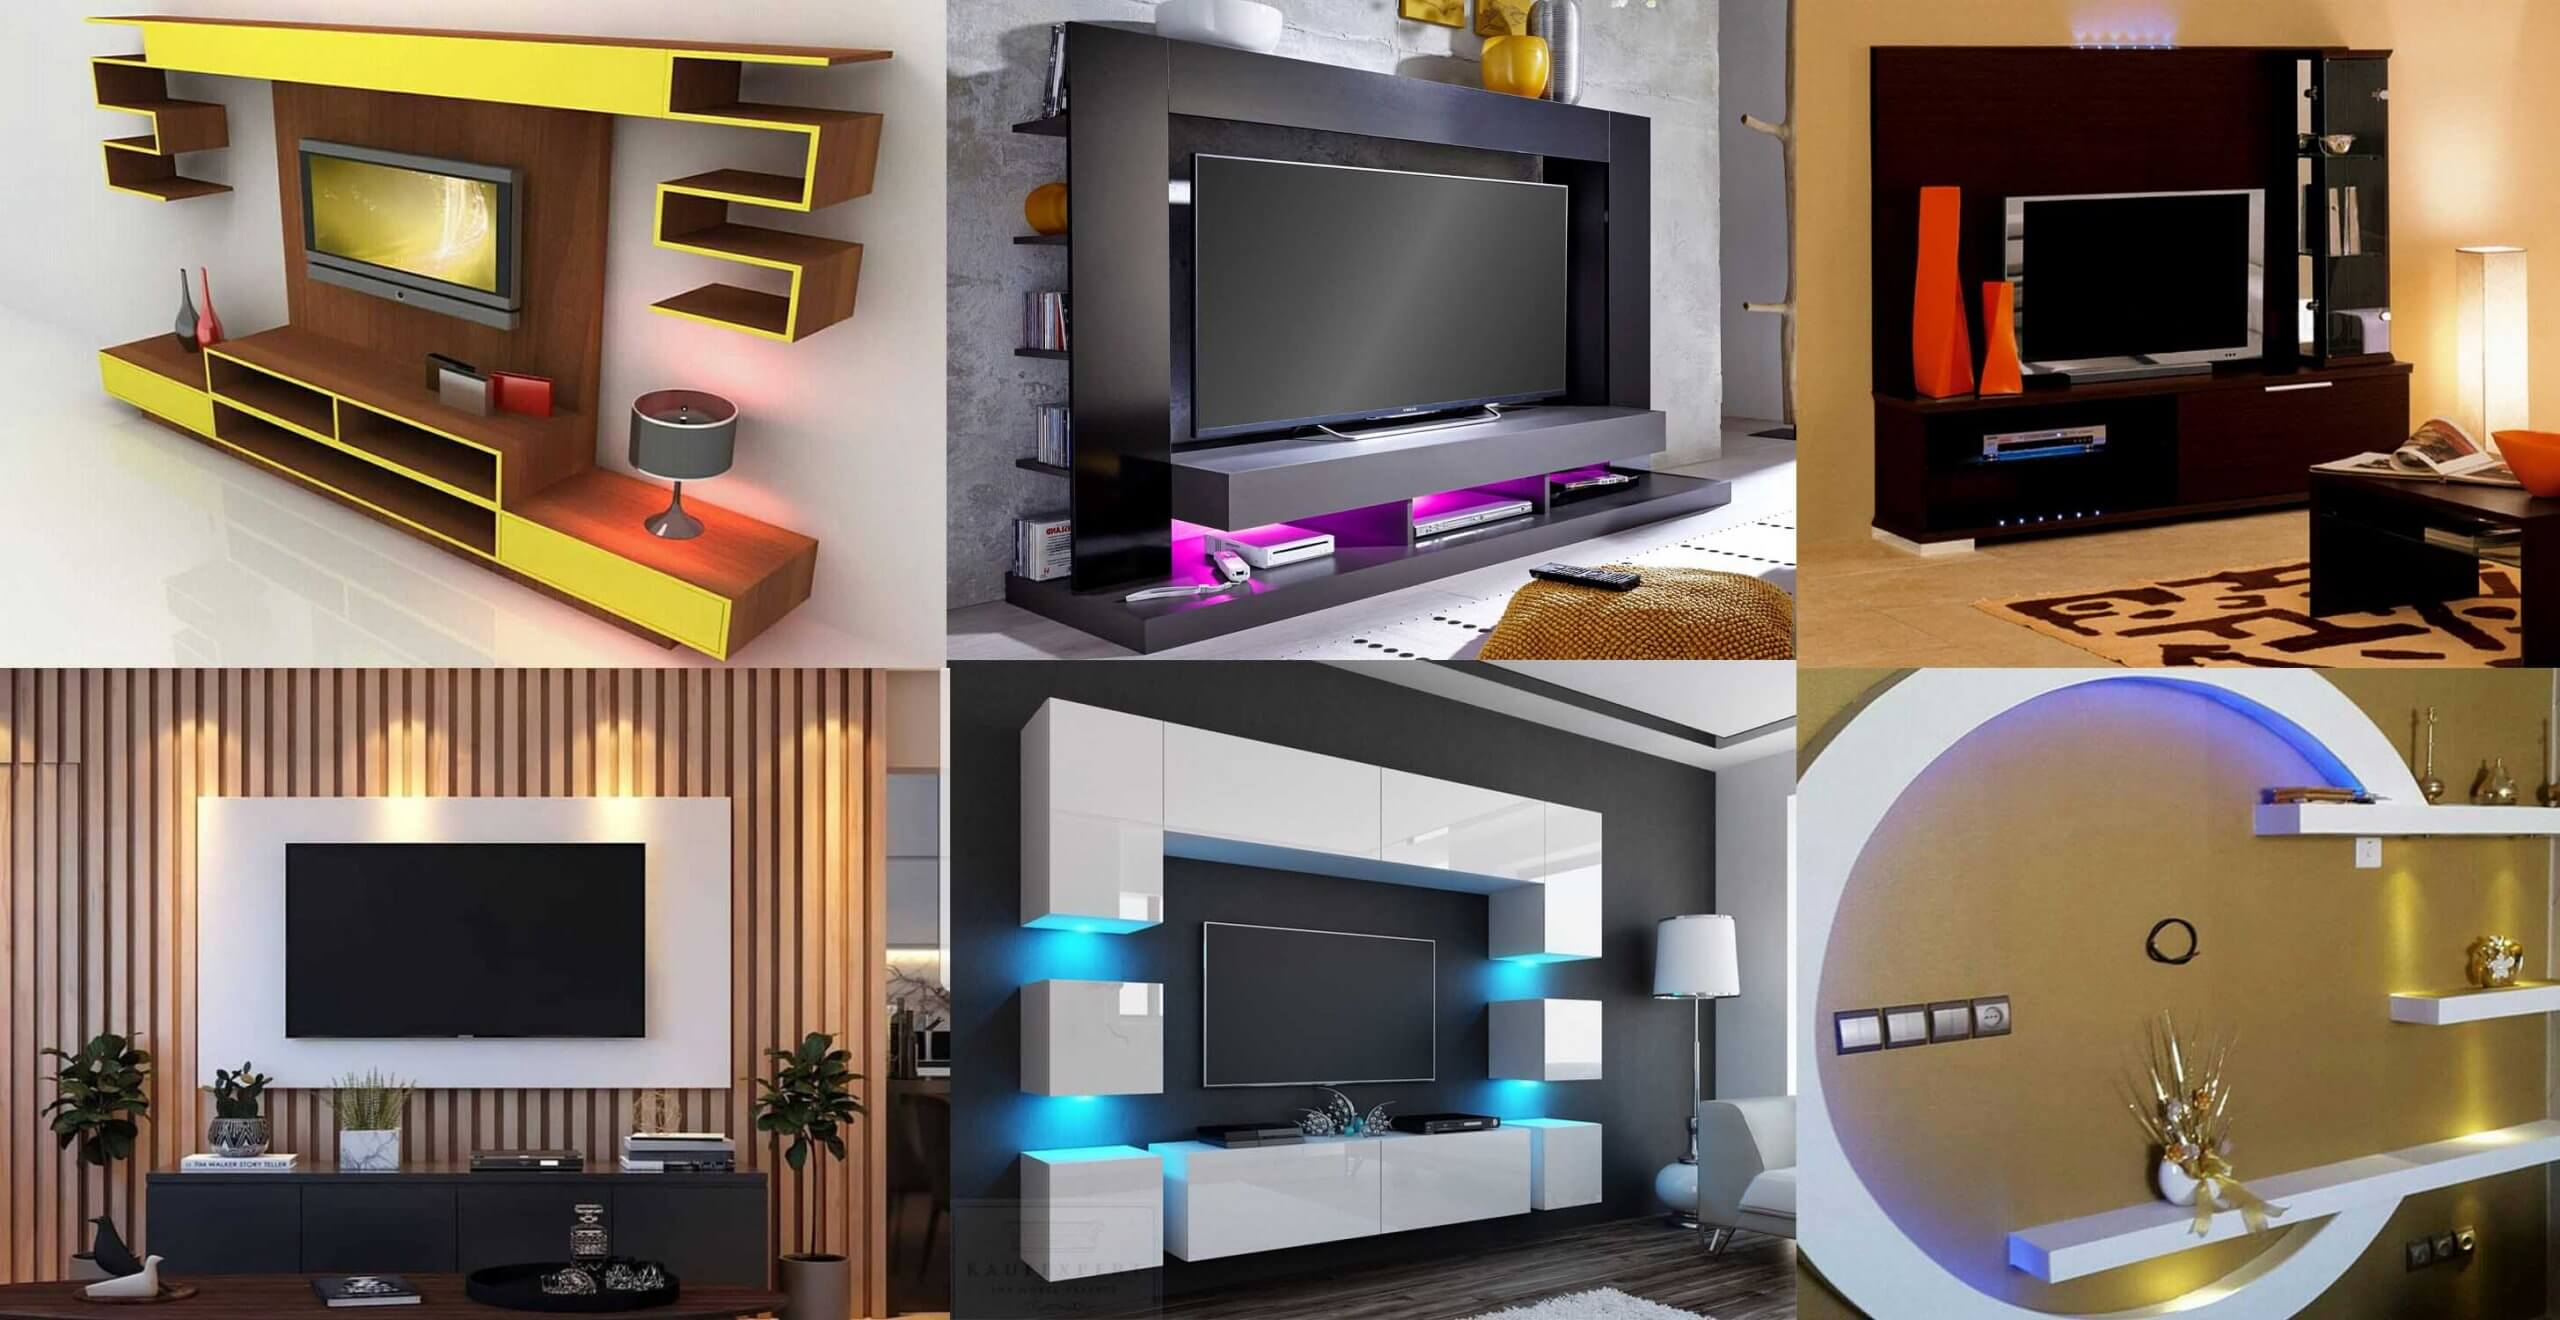 Top 50 Modern Tv Stand Design Ideas For 2020 Engineering Discoveries - Wohnzimmerschränke Modern